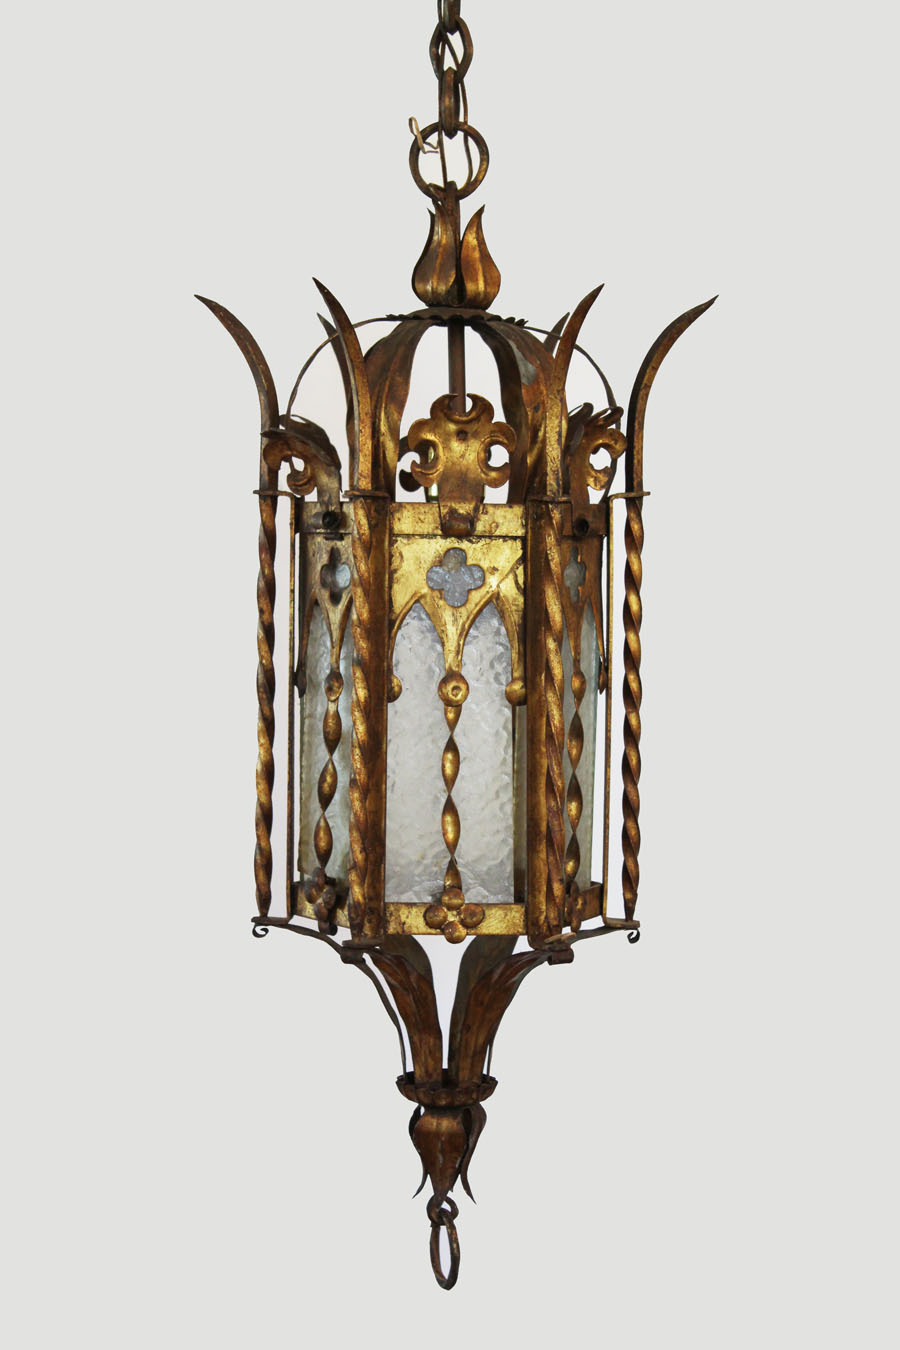 Antique Gothic French Revival Lantern Hanging Light